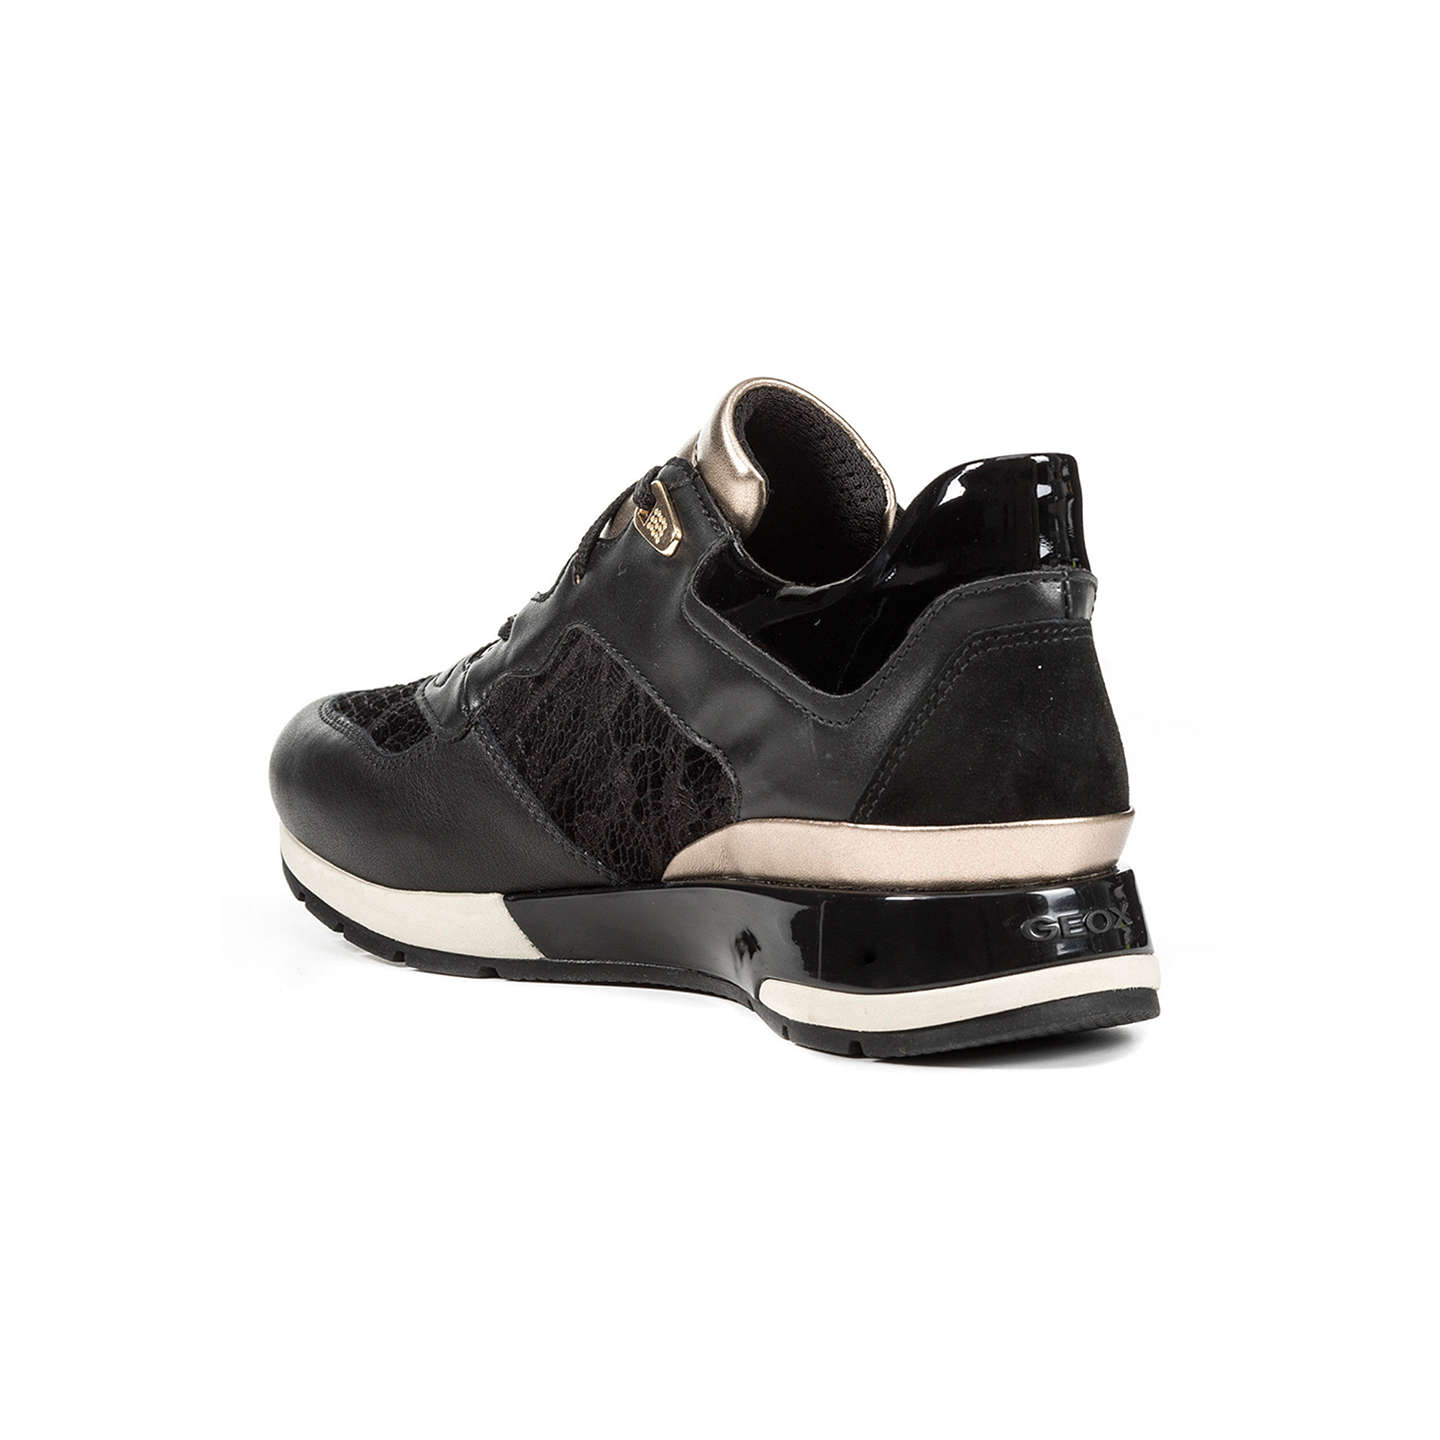 BuyGeox Shahira Breathable Lace Up Trainers, Black/Gold, 3 Online at johnlewis.com